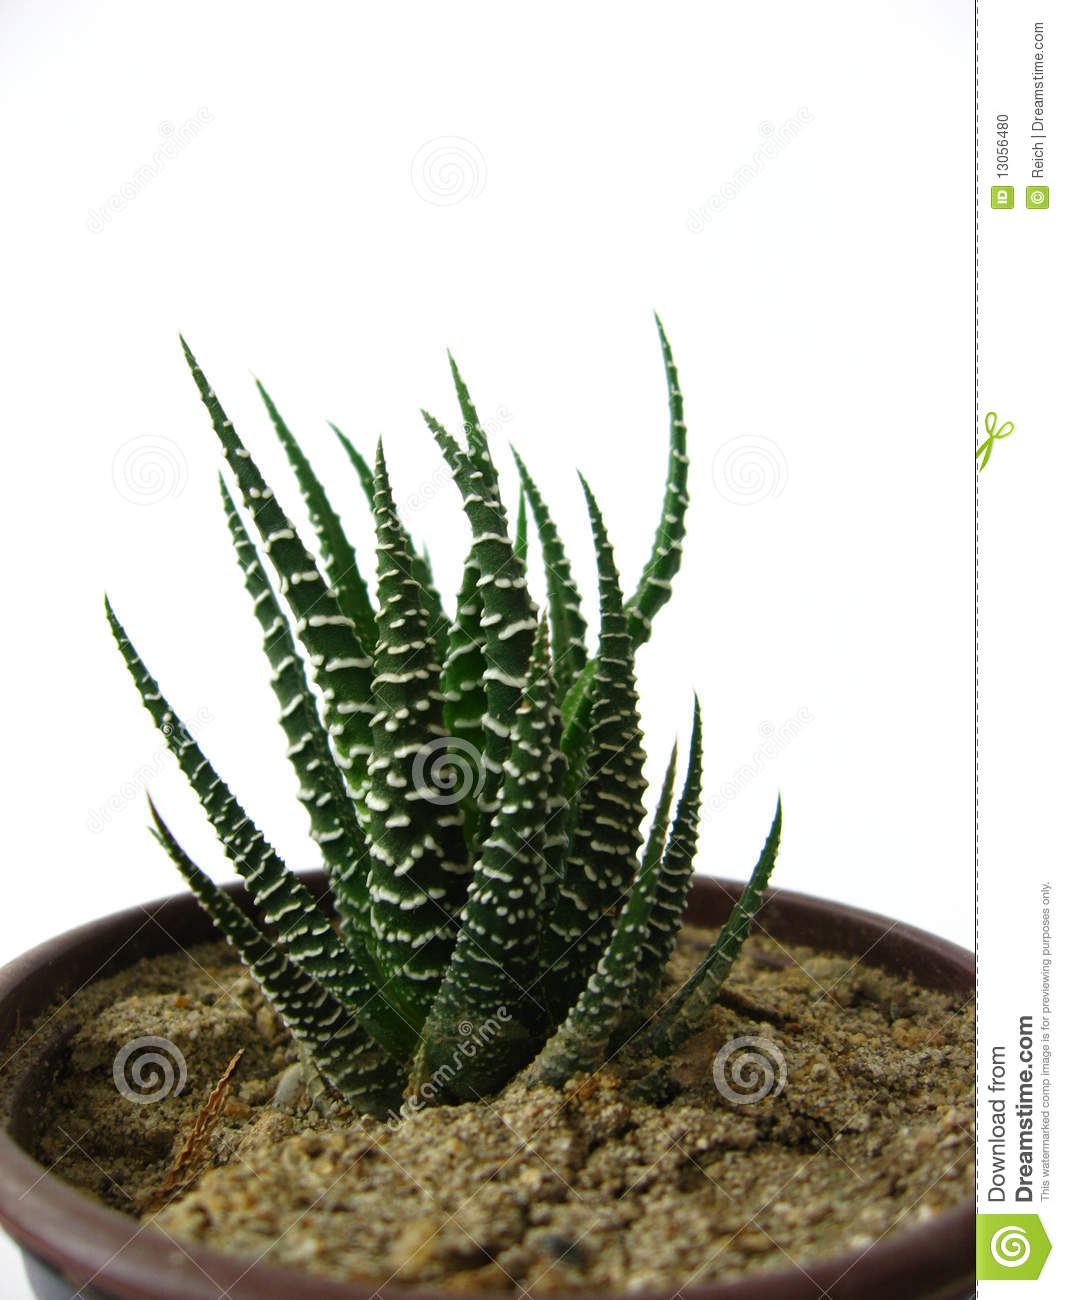 Http Dreamstime Com Stock Photo Small Cactus Image13056480